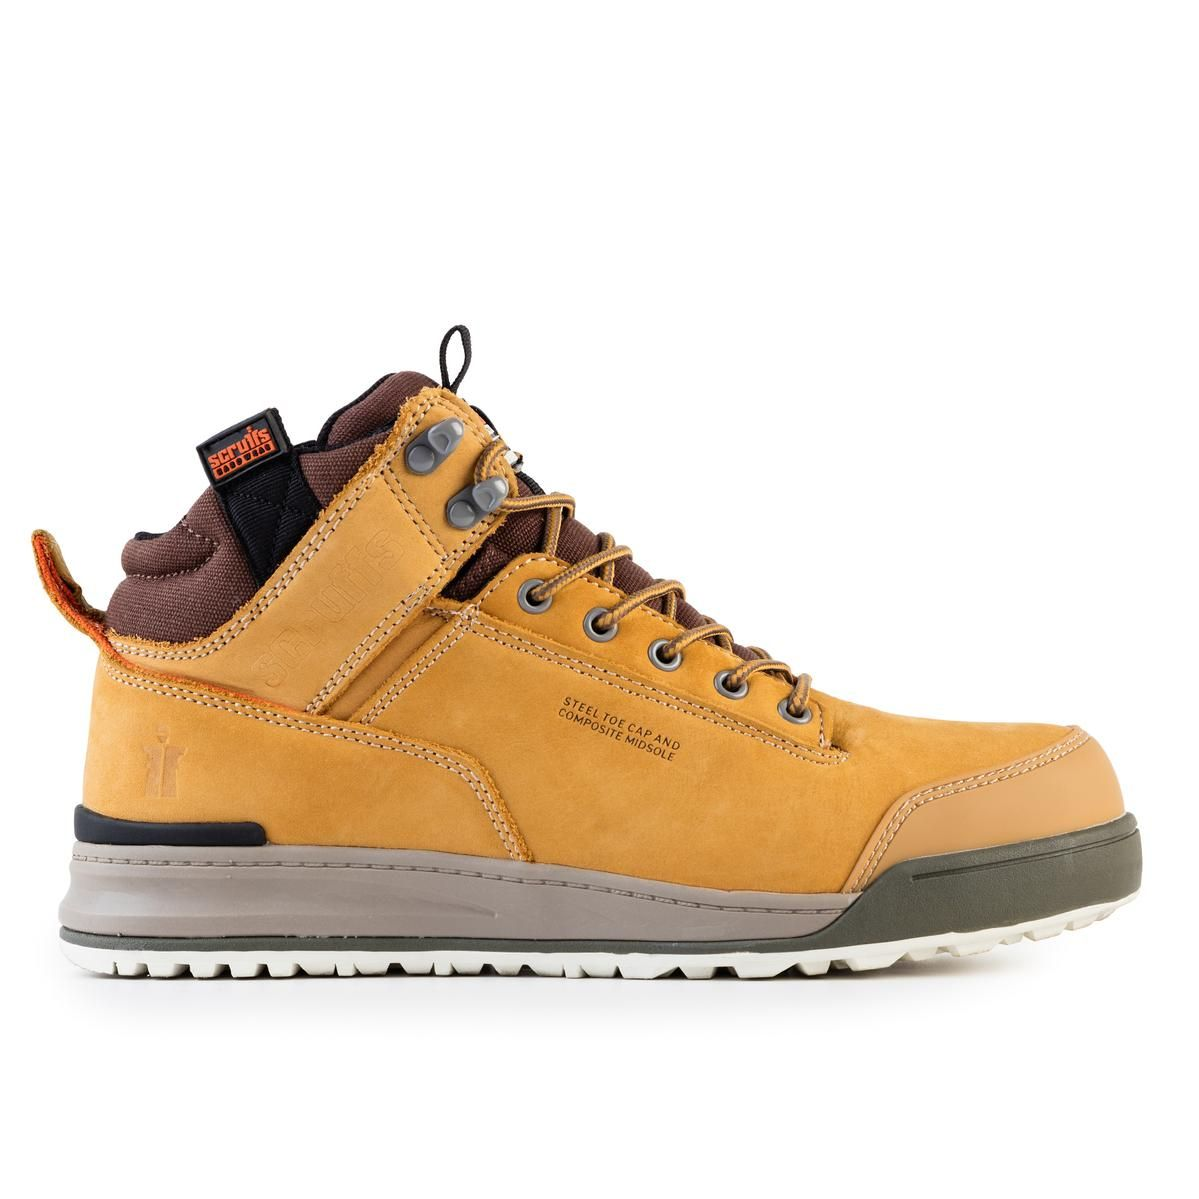 Scruffs Switchback S3 SRA HRO Rated Safety Boots Tan